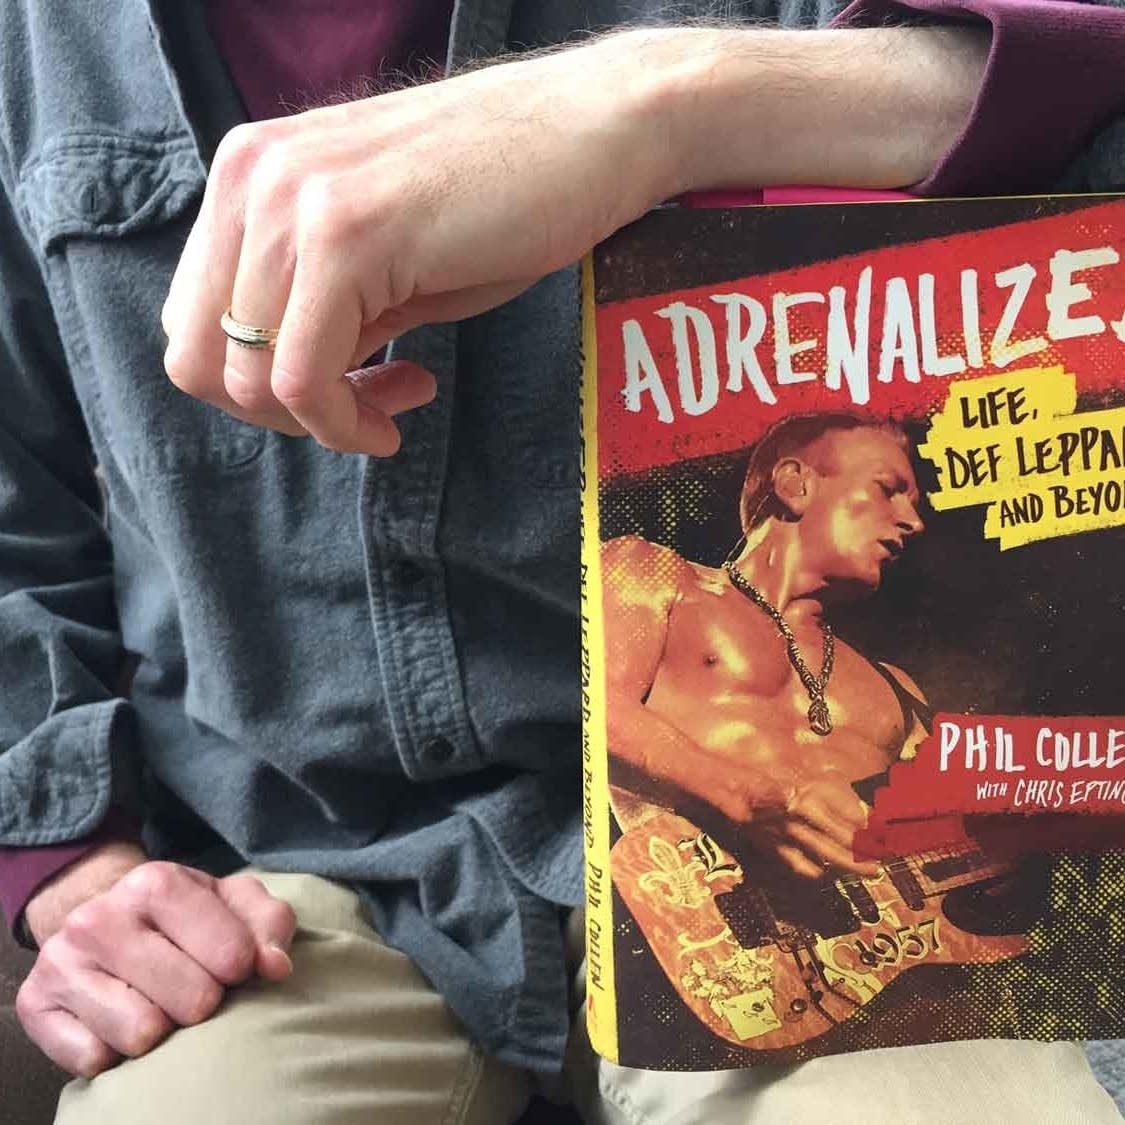 Phil Collen's book, 'Adrenalized'